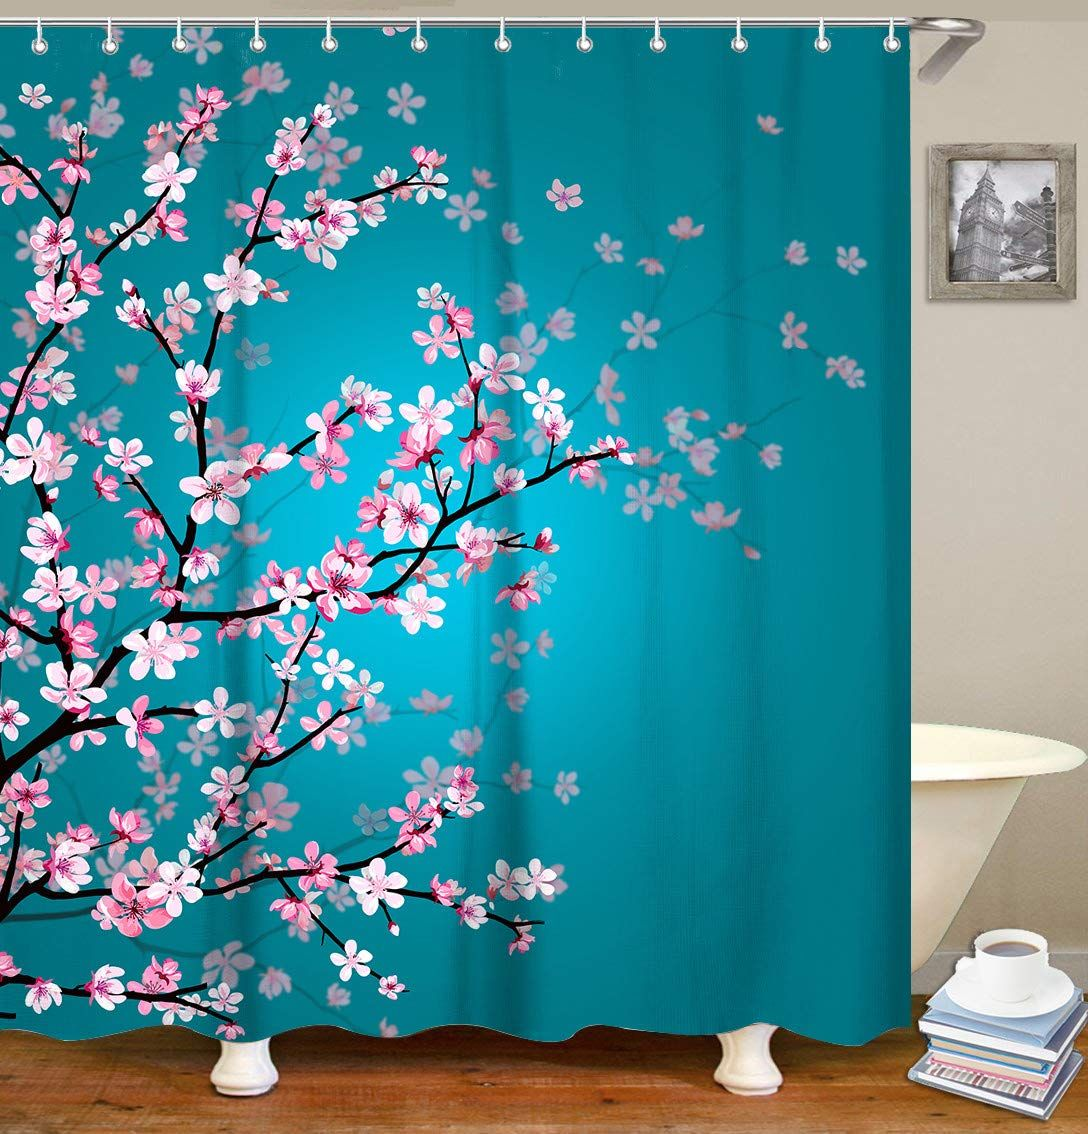 Cherry Blossom Shower Curtain Designer Shower Curtains Bathroom Shower Curtains Bathroom Decor